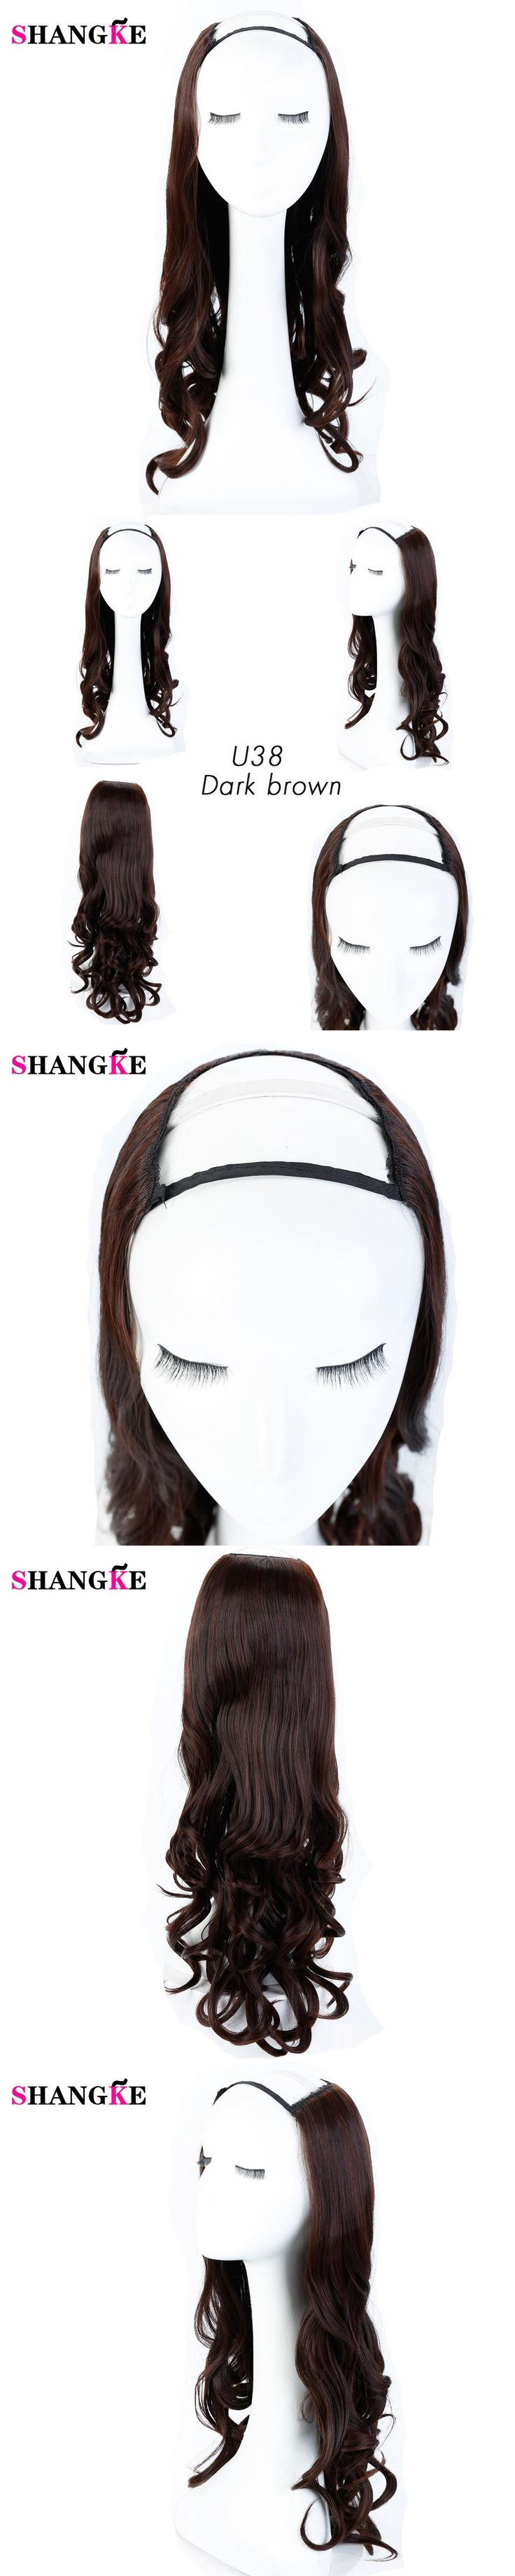 SHANGKE Synthetic Half Wigs U shape Hair wigs Black Long Wavy Heat Resistant Headband Wigs For American European Daily Use